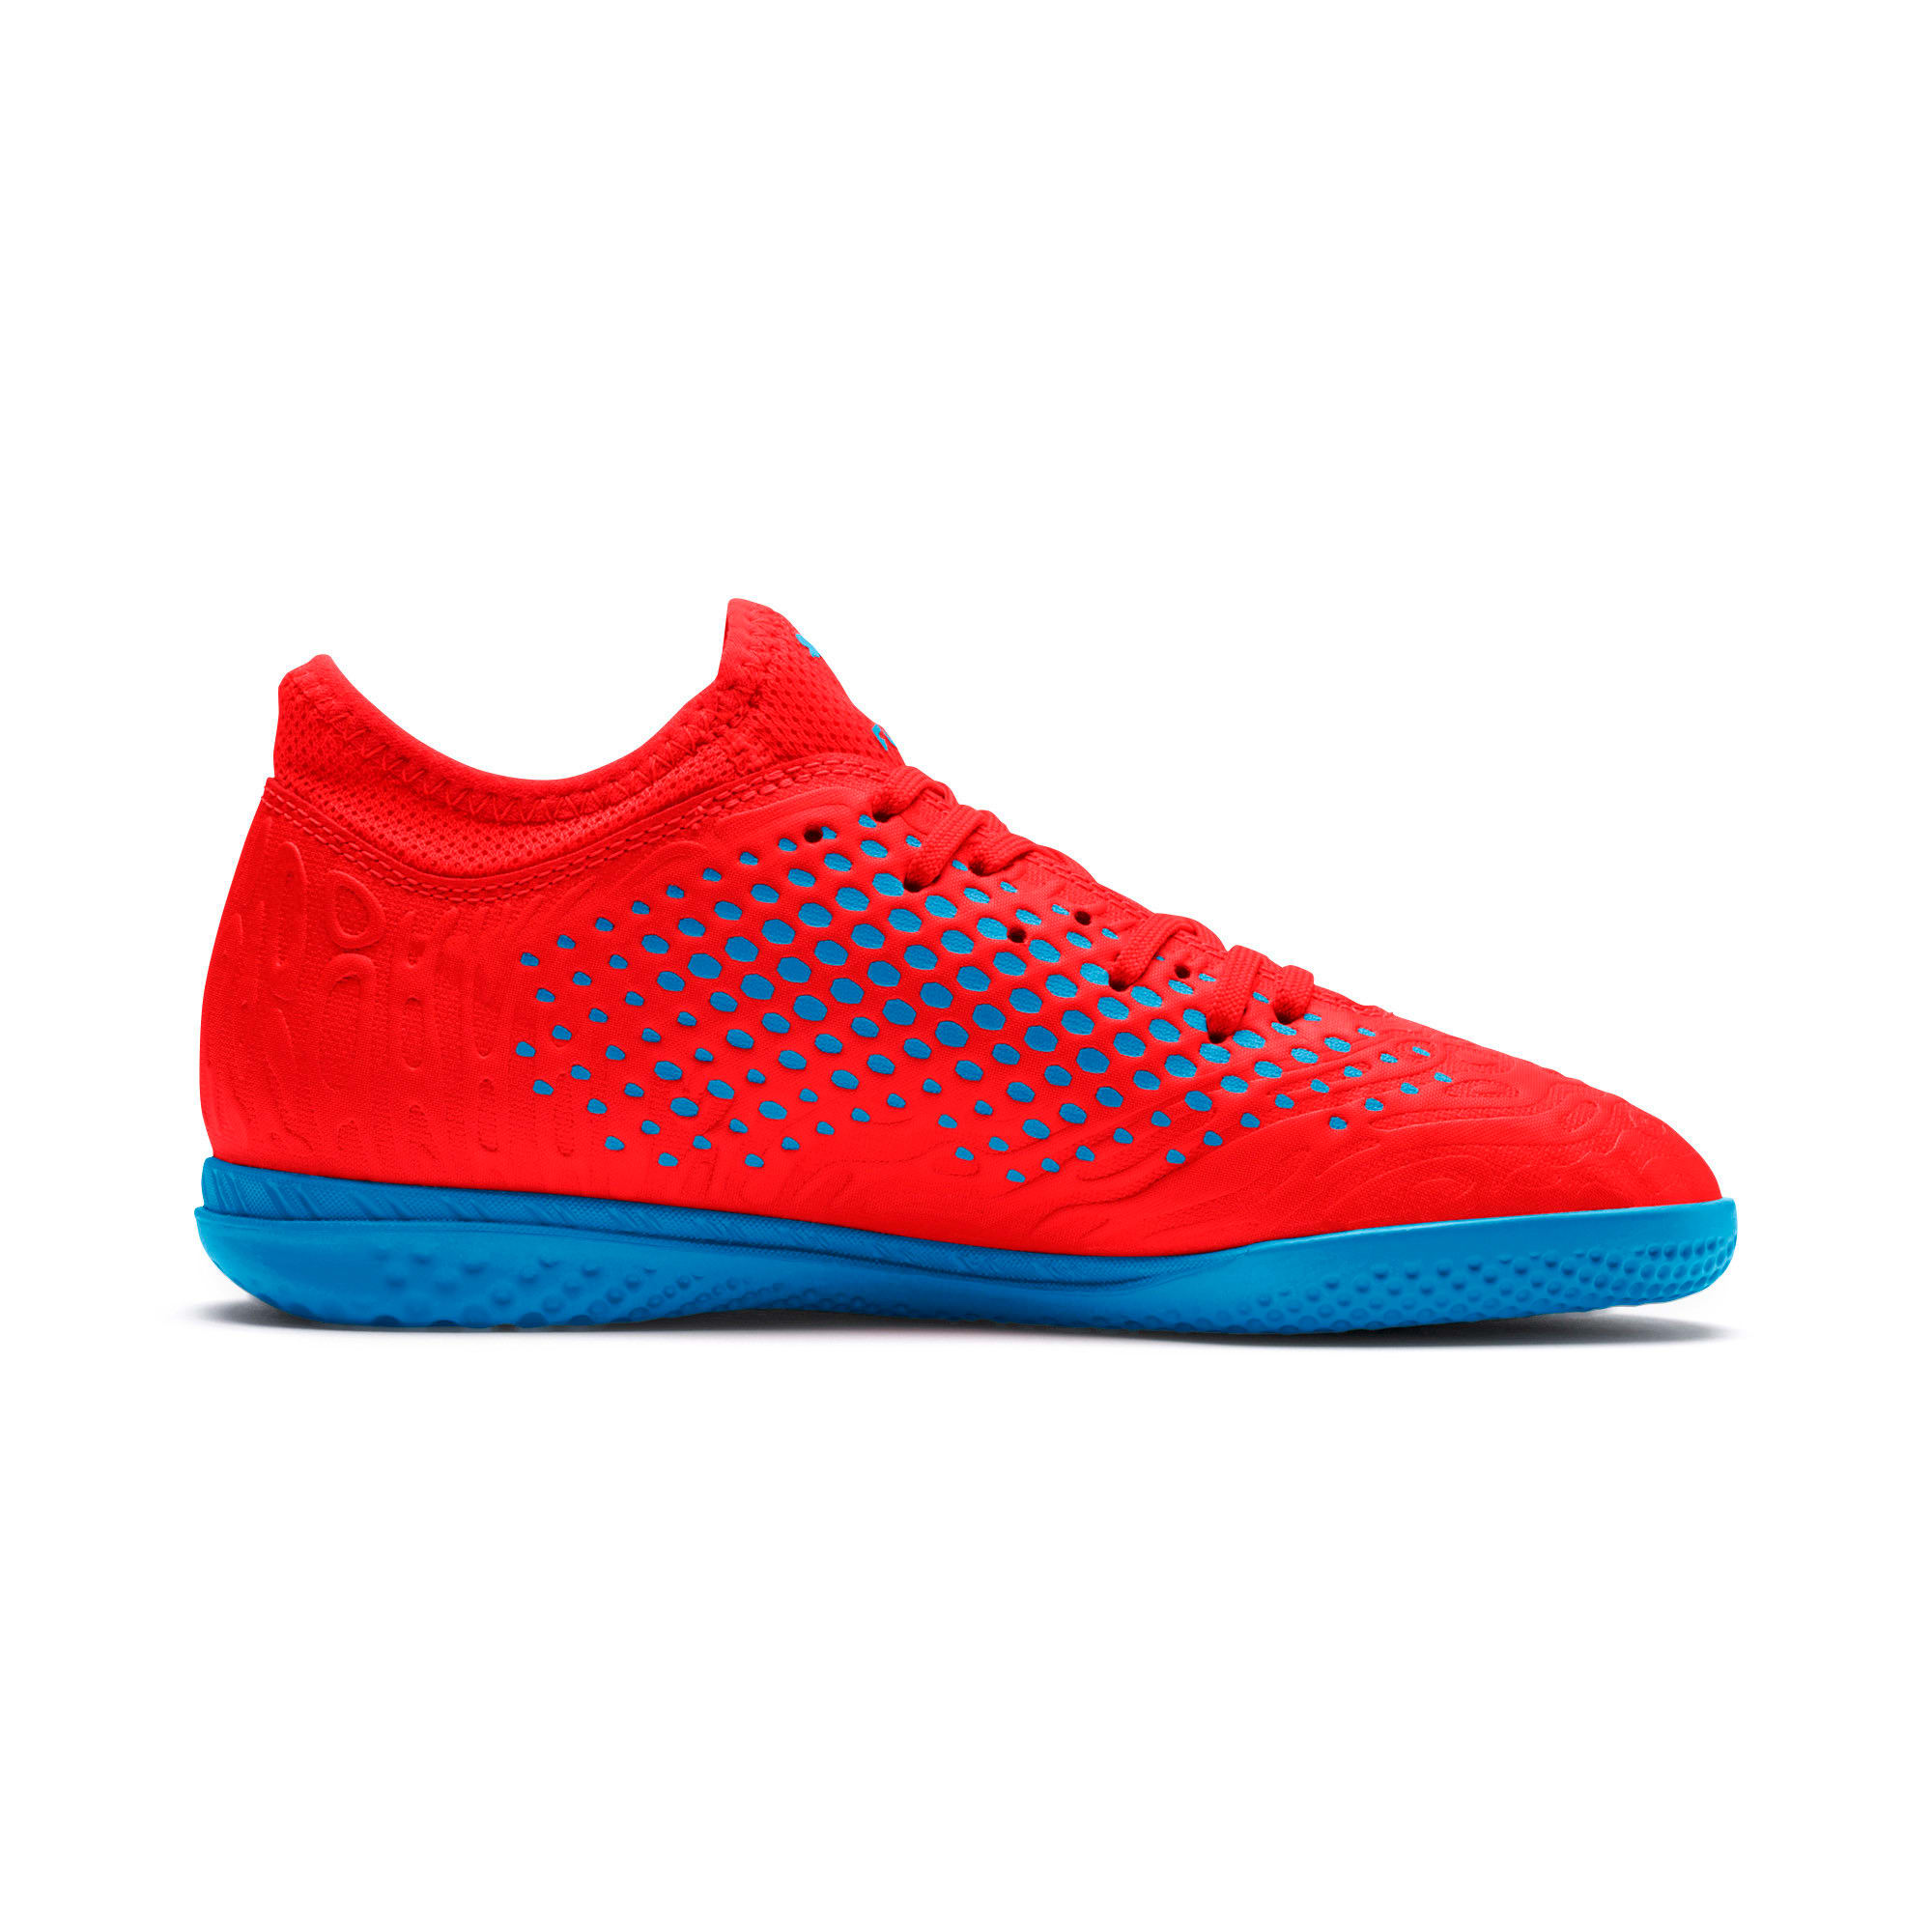 Thumbnail 5 of FUTURE 19.4 IT Soccer Shoes JR, Red Blast-Bleu Azur, medium